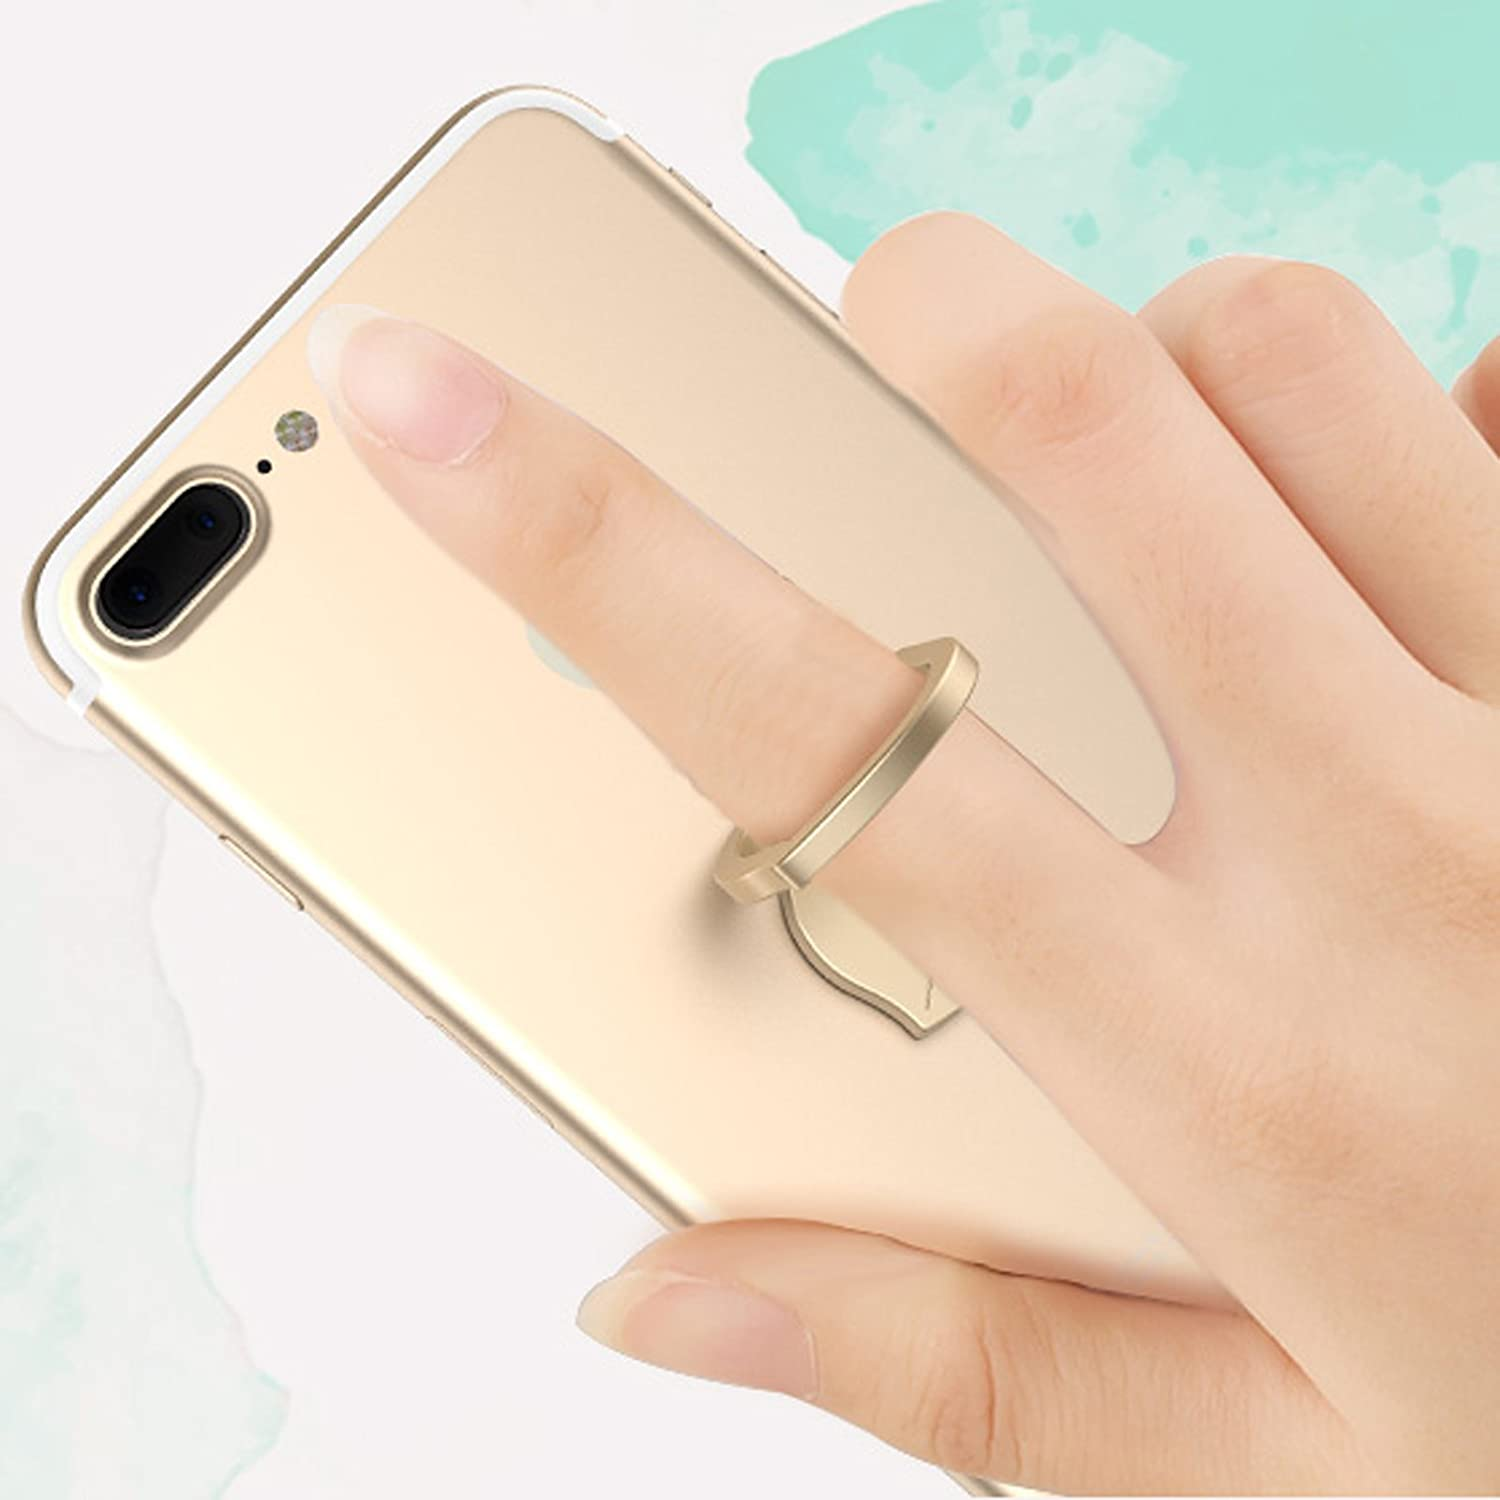 Phone finger ring holder//stand 2 pcs//Zinc alloy finger grip stand holder ring//car mount for iPhone 6s plus 7 8 plus//Samsung Galaxy S7 edge HTC Smartphones phone ring LEDING a132